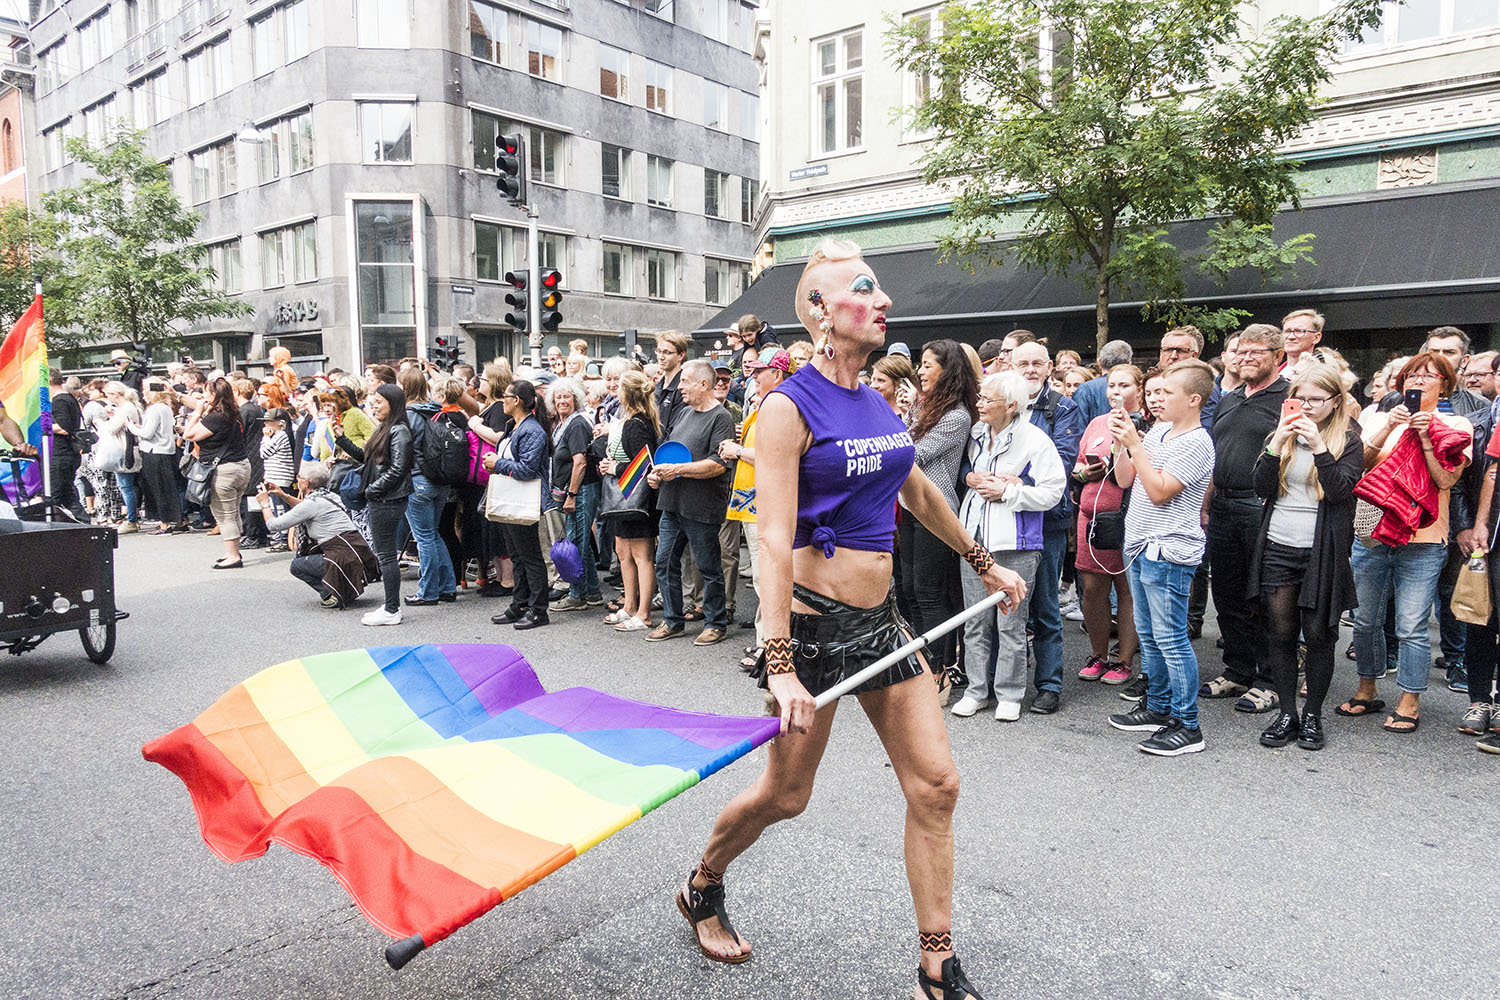 CphPride2016_HelenaLundquist_blog_3